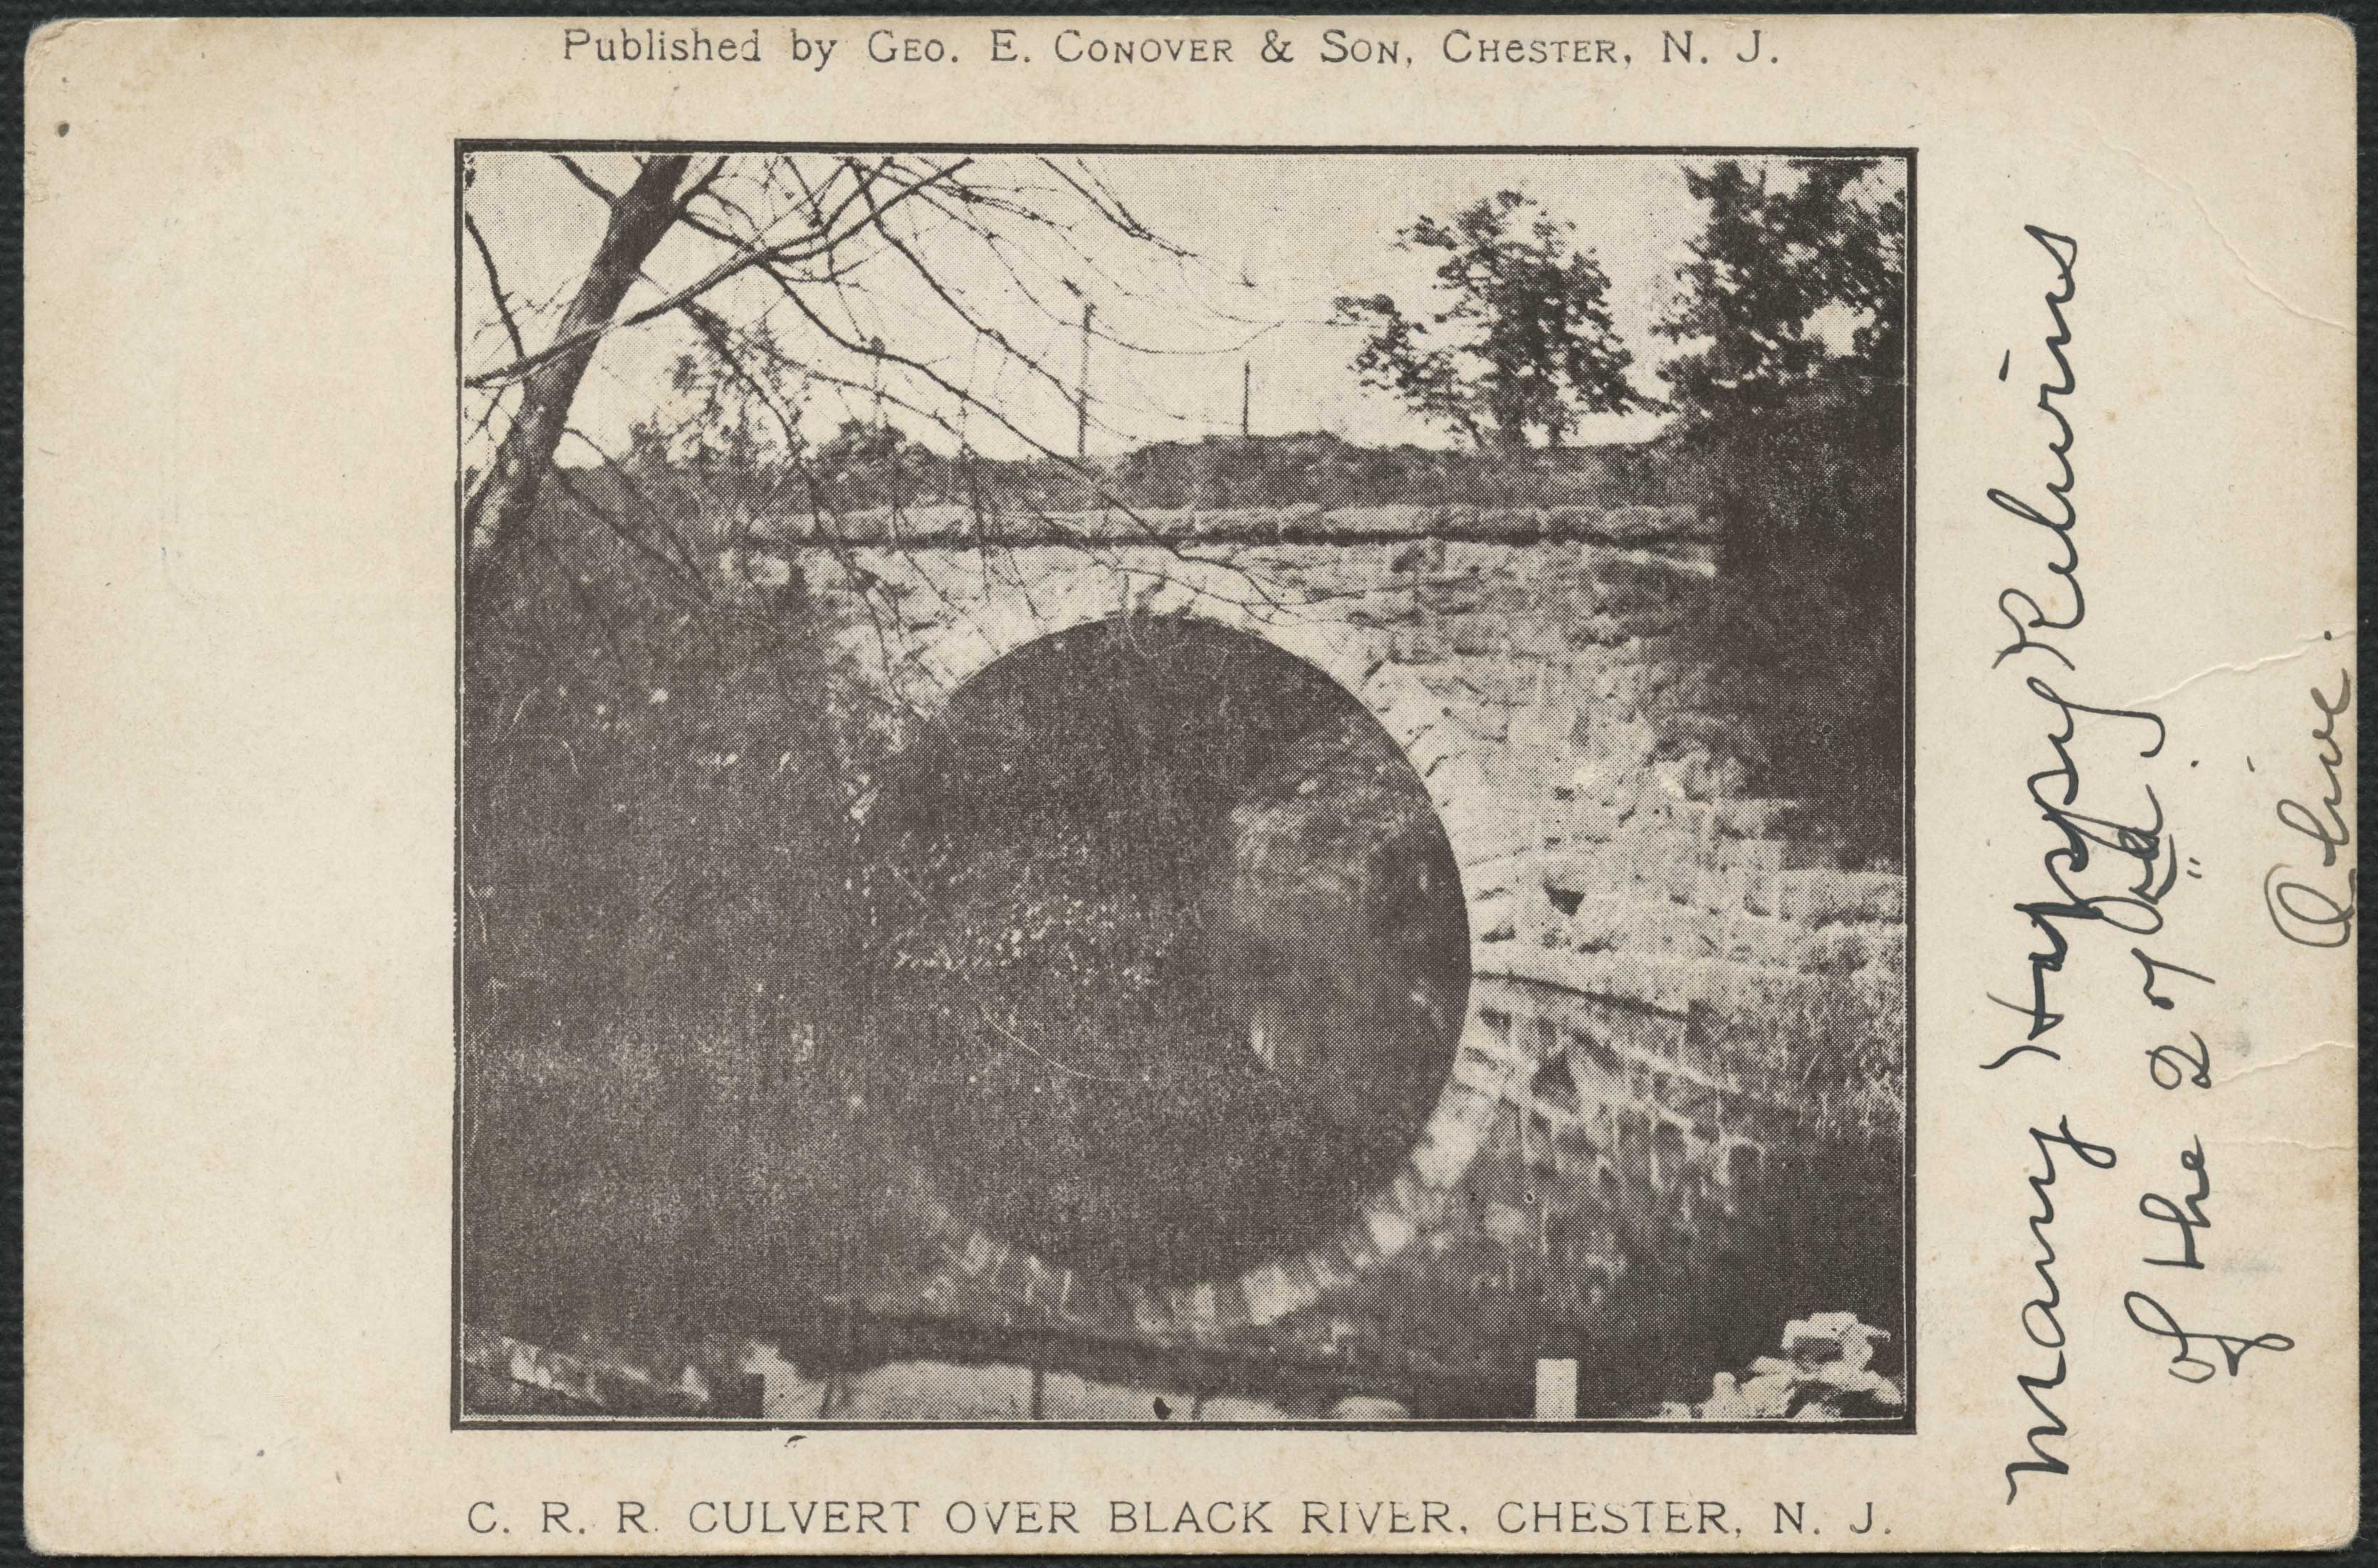 Culvert over Black River (front)